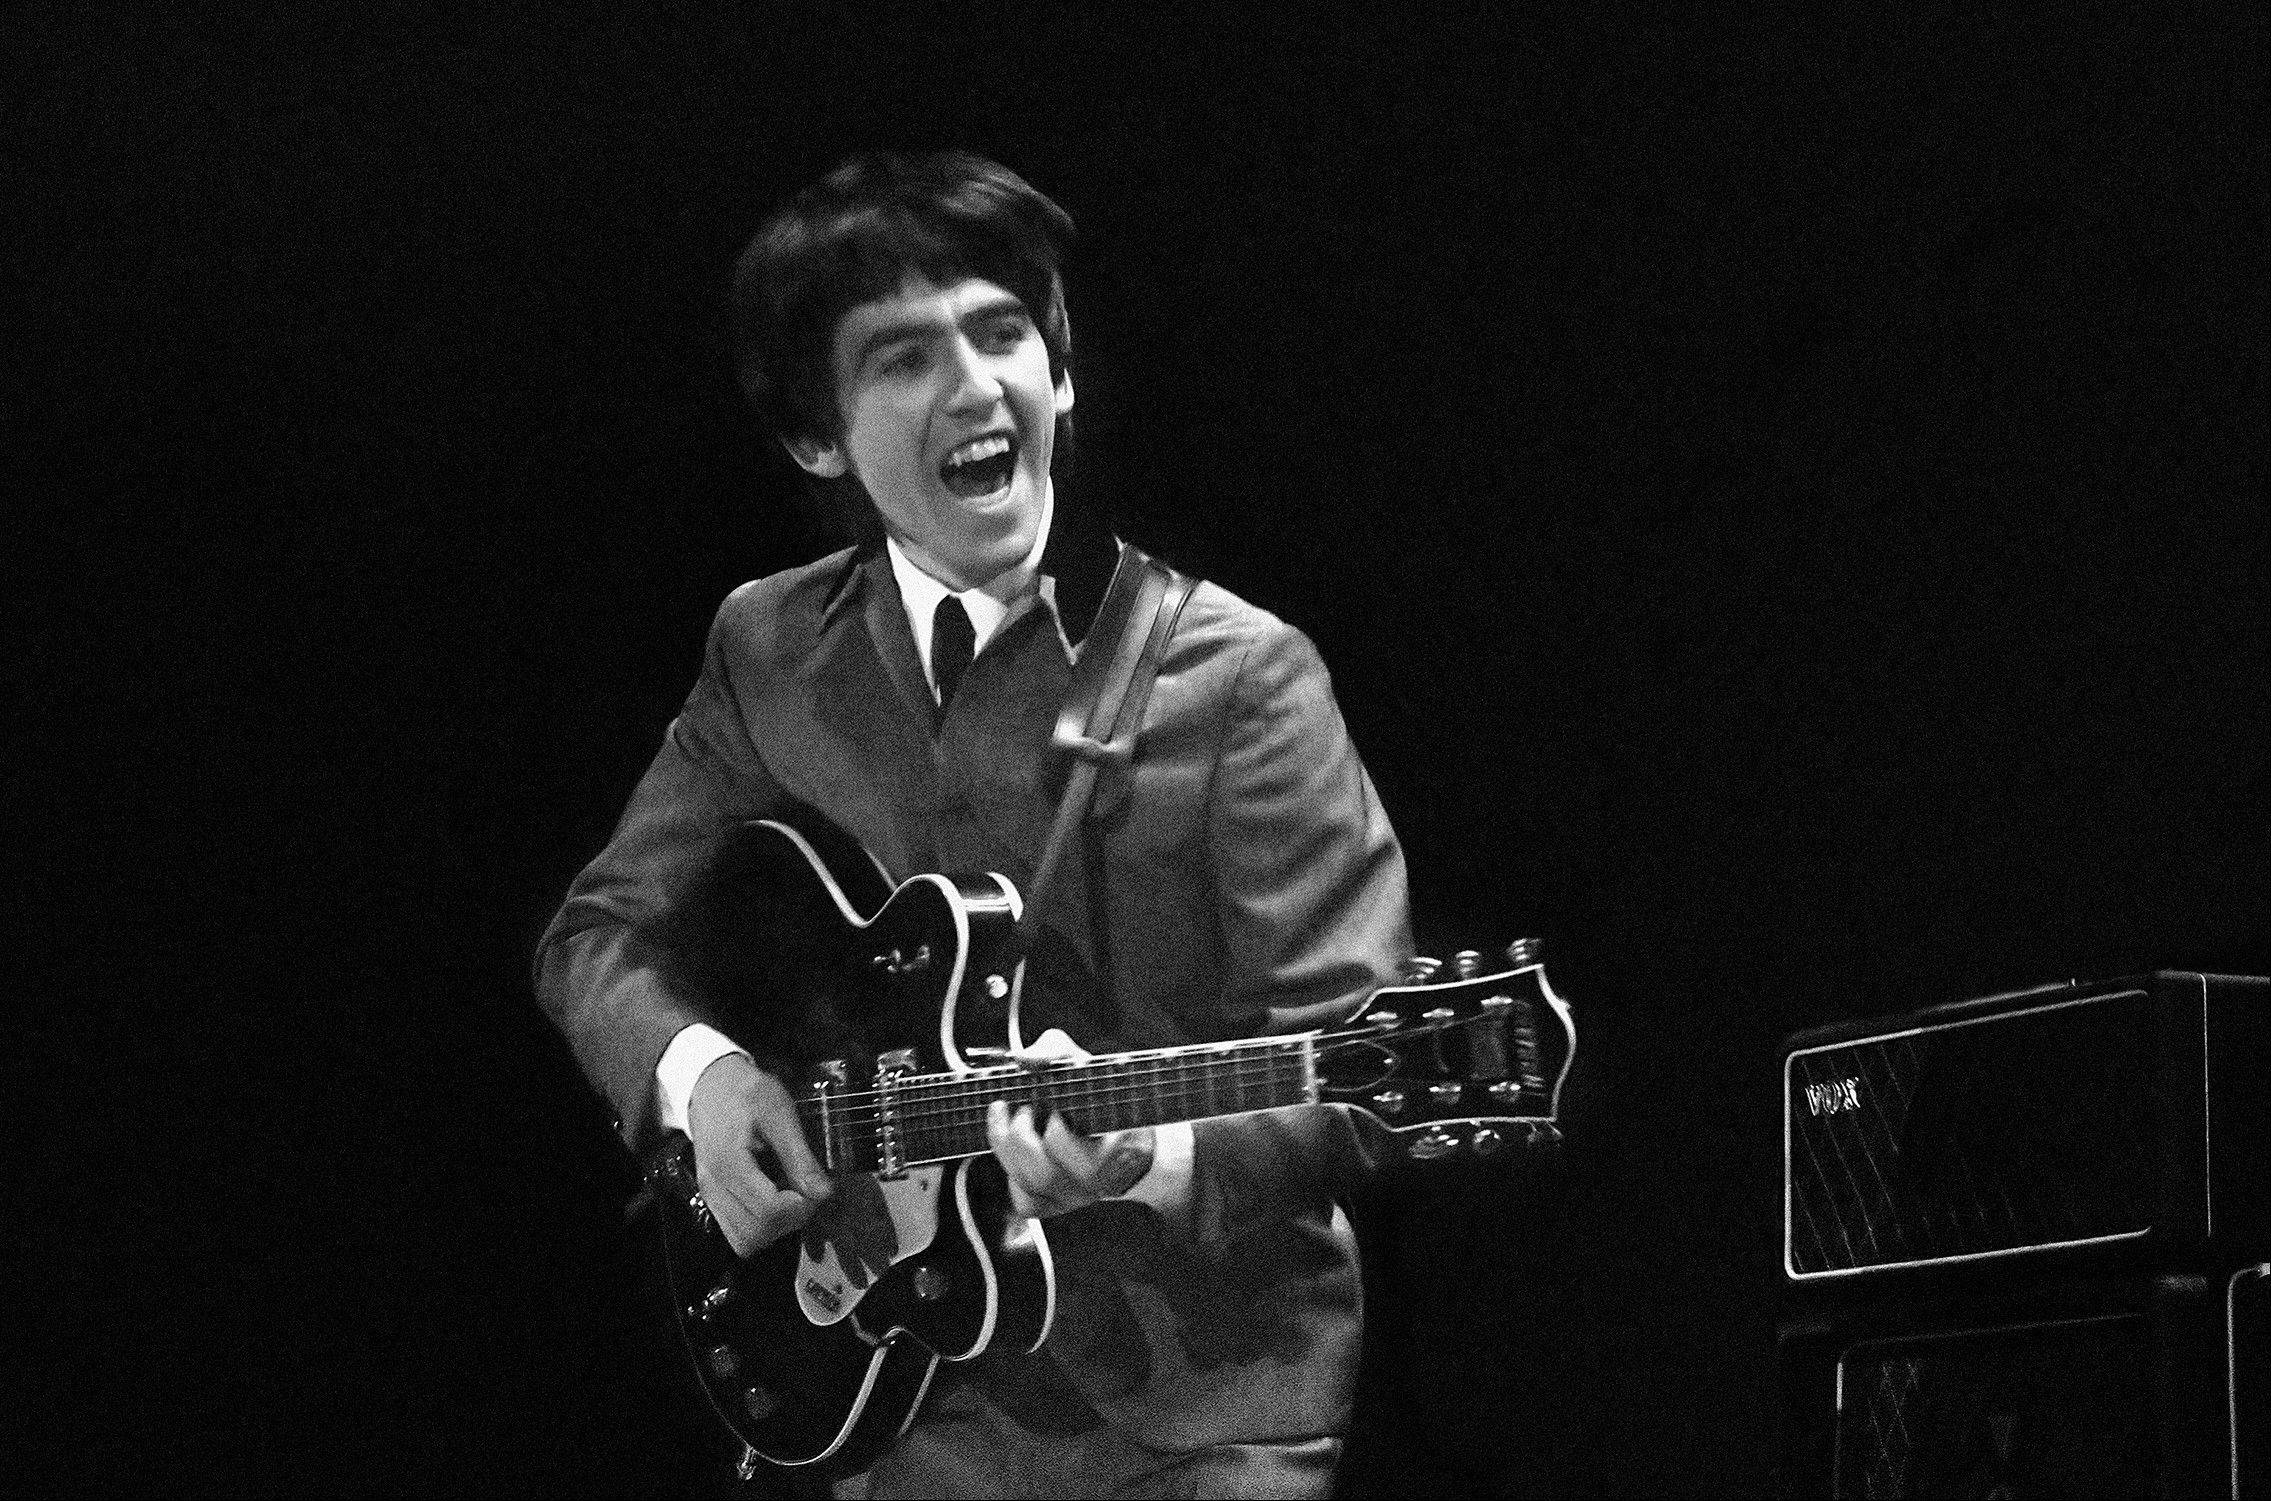 This Feb. 11, 1964 image provided by the David Anthony Fine Art gallery in Taos, N.M., shows a photograph of George Harrison taken by photographer Mike Mitchell during the Beatles first live U.S. concert at the Washington Coliseum.